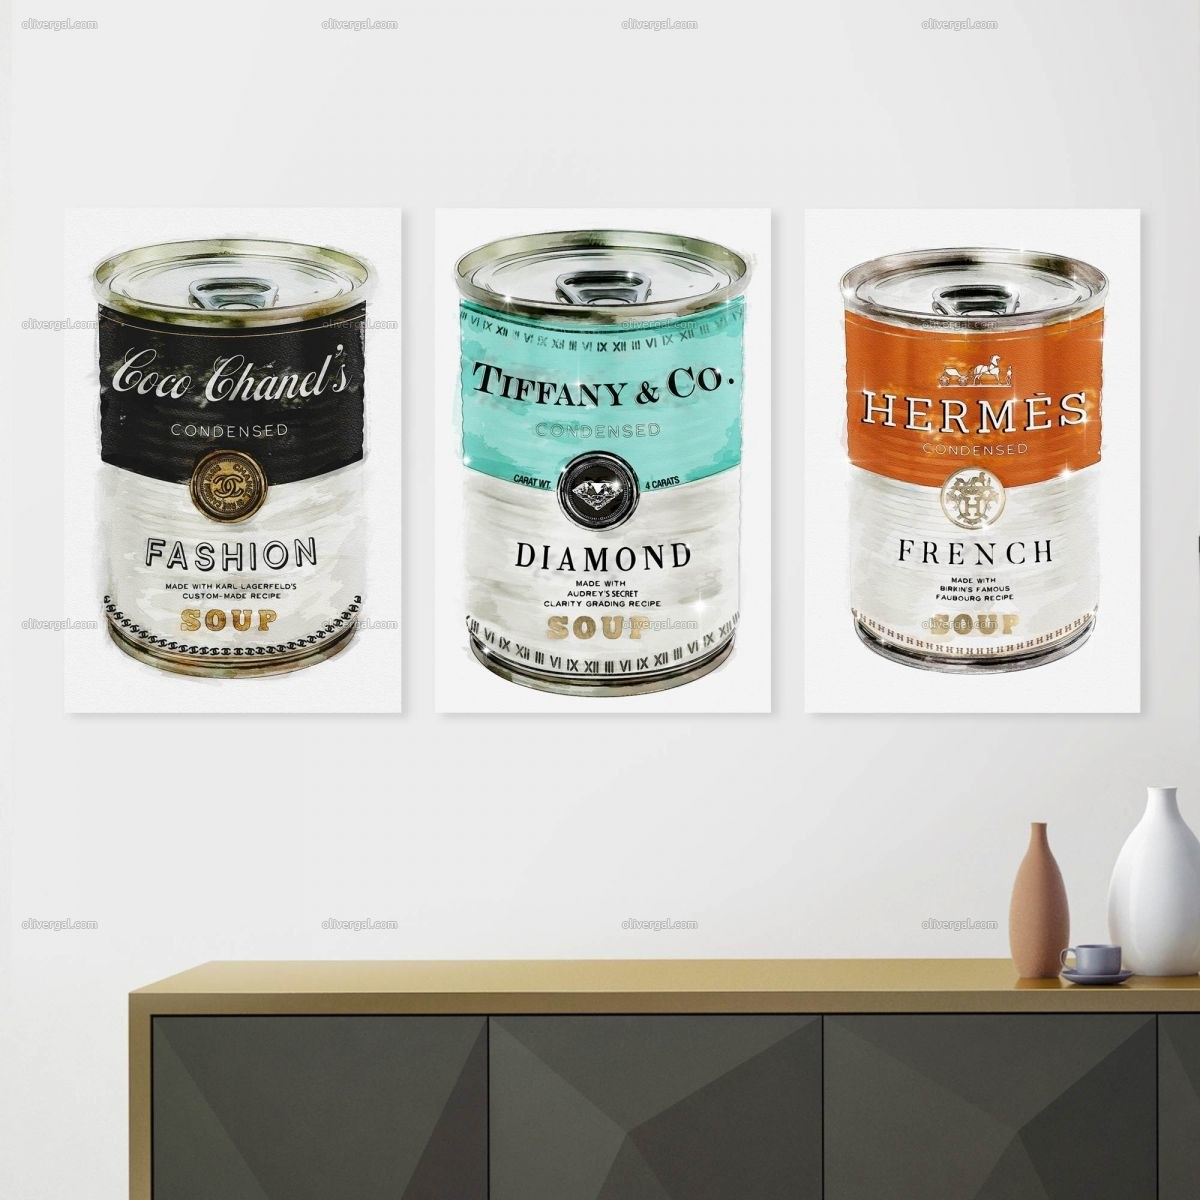 three pieces of wall art in style of Andy Warhol pop art soup cans in Chanel, Tiffany's, and Hermes